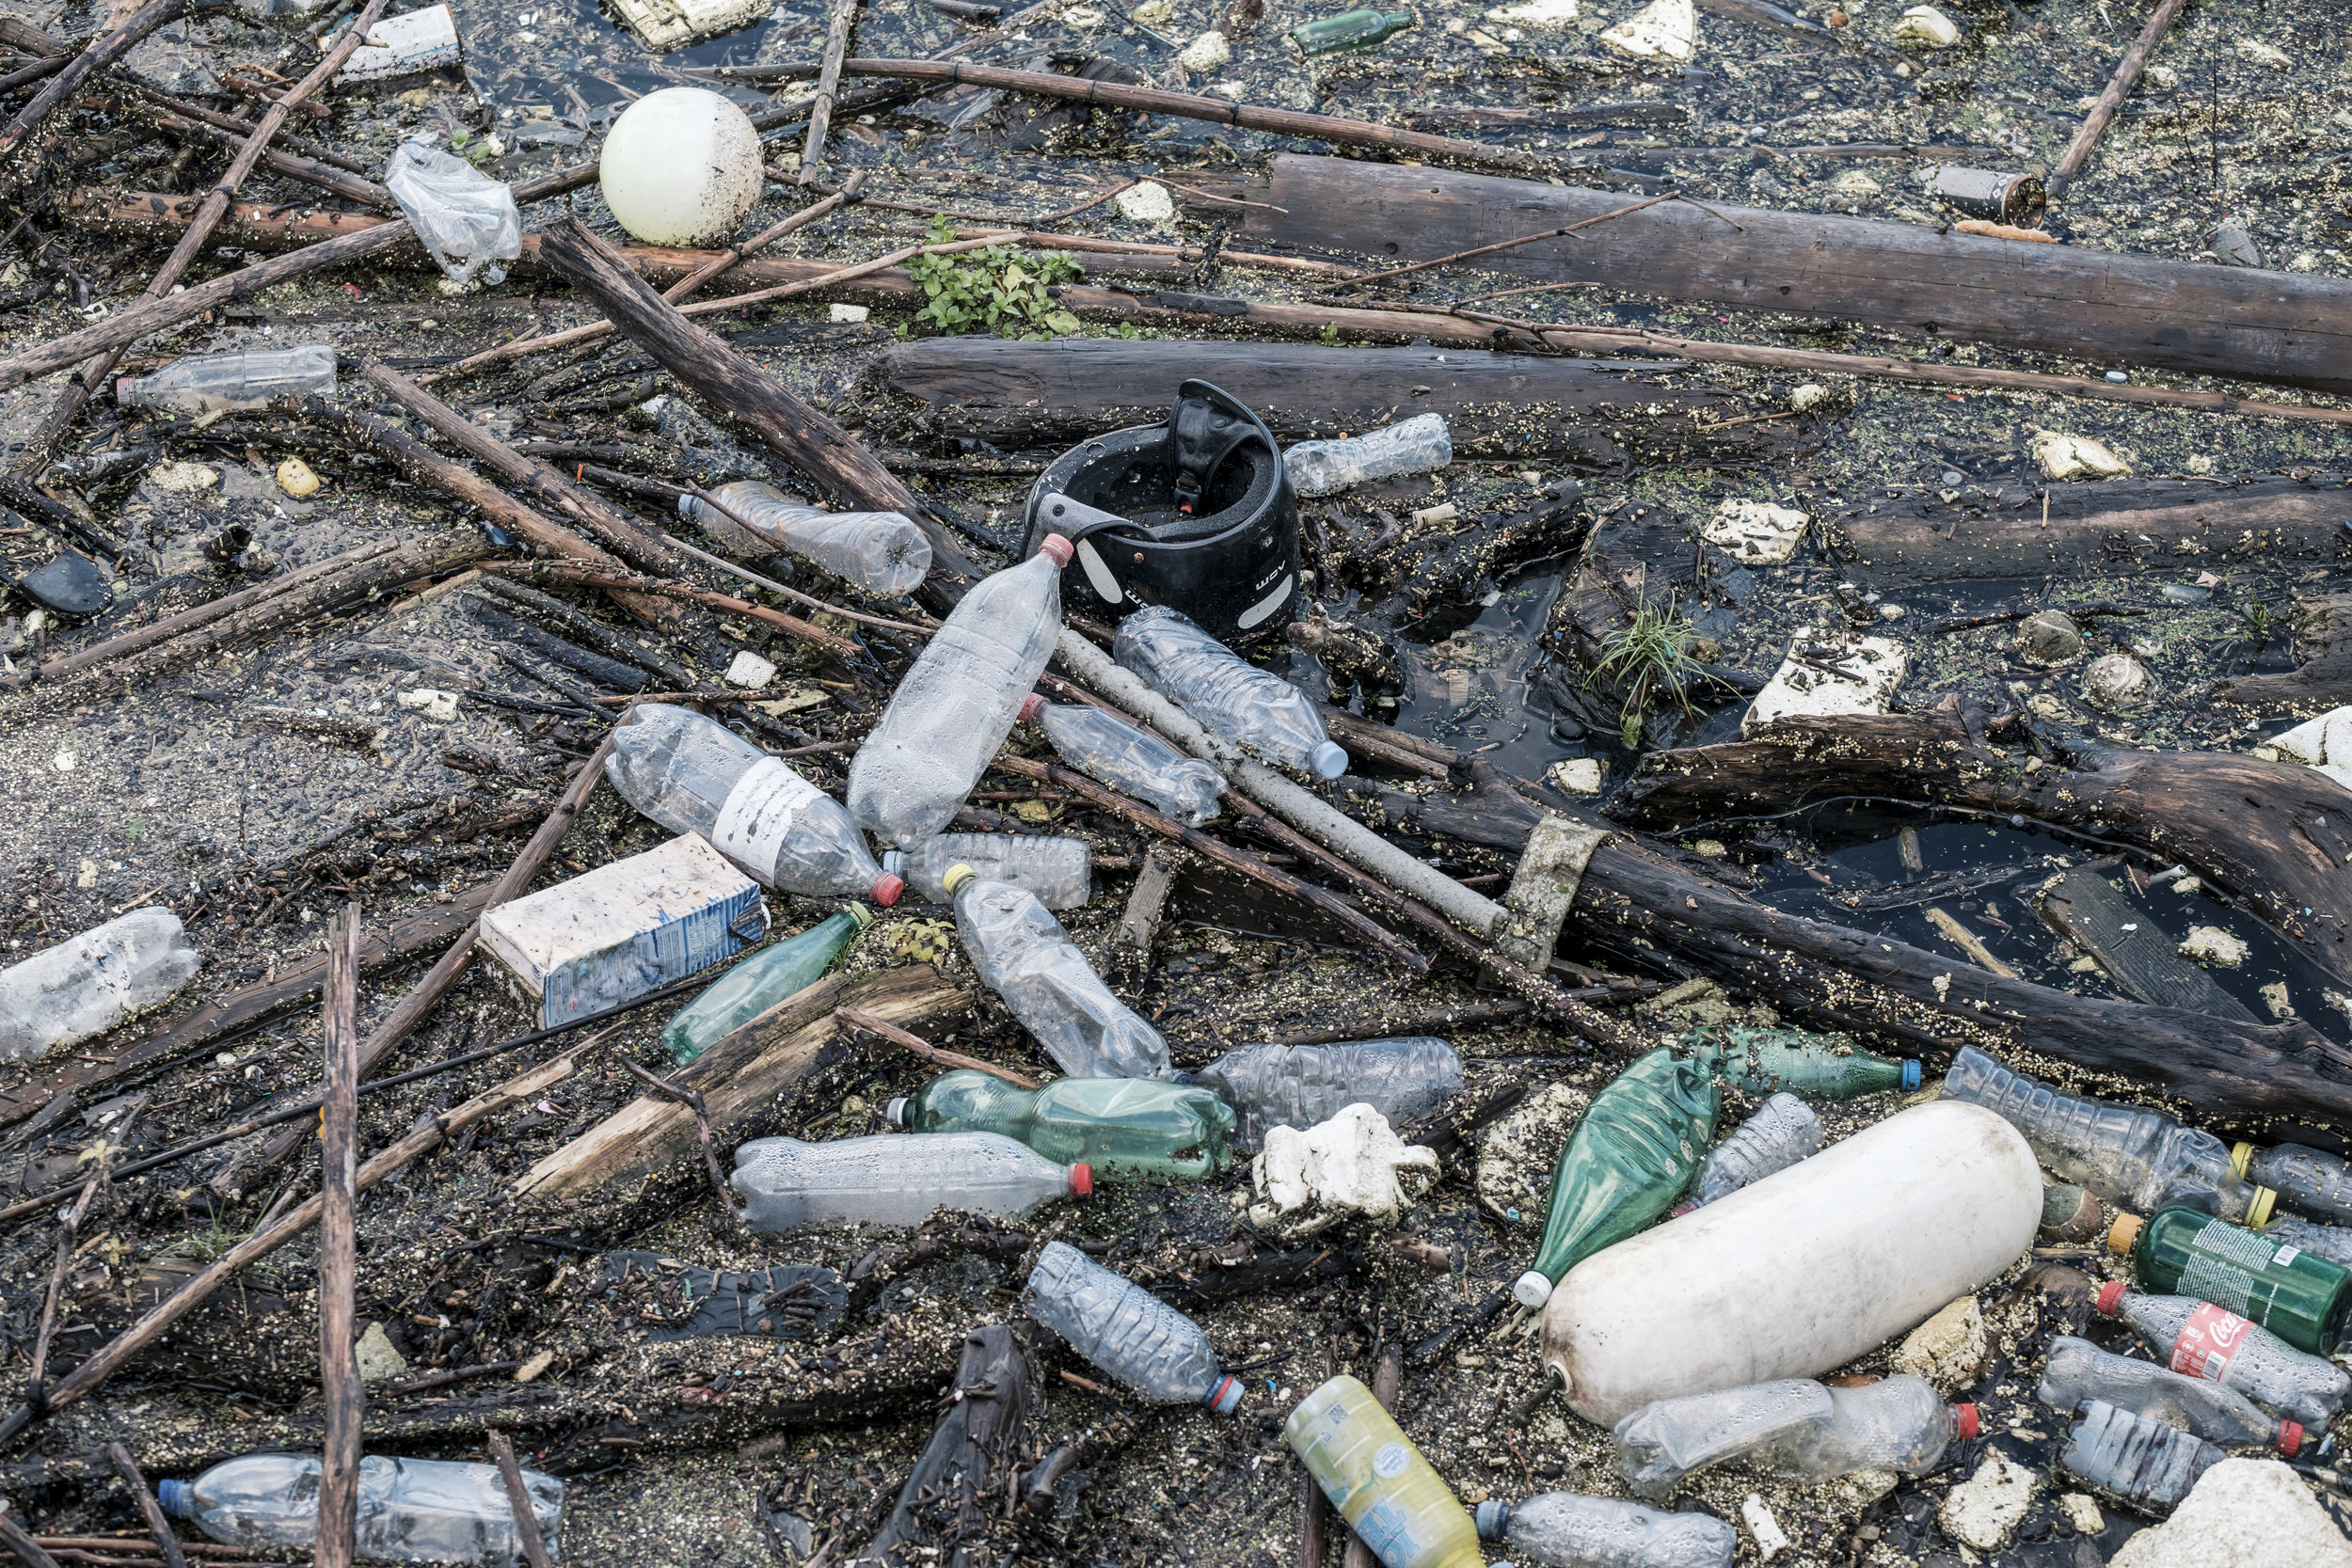 Plastic pollution on the beach | Cedar + Surf